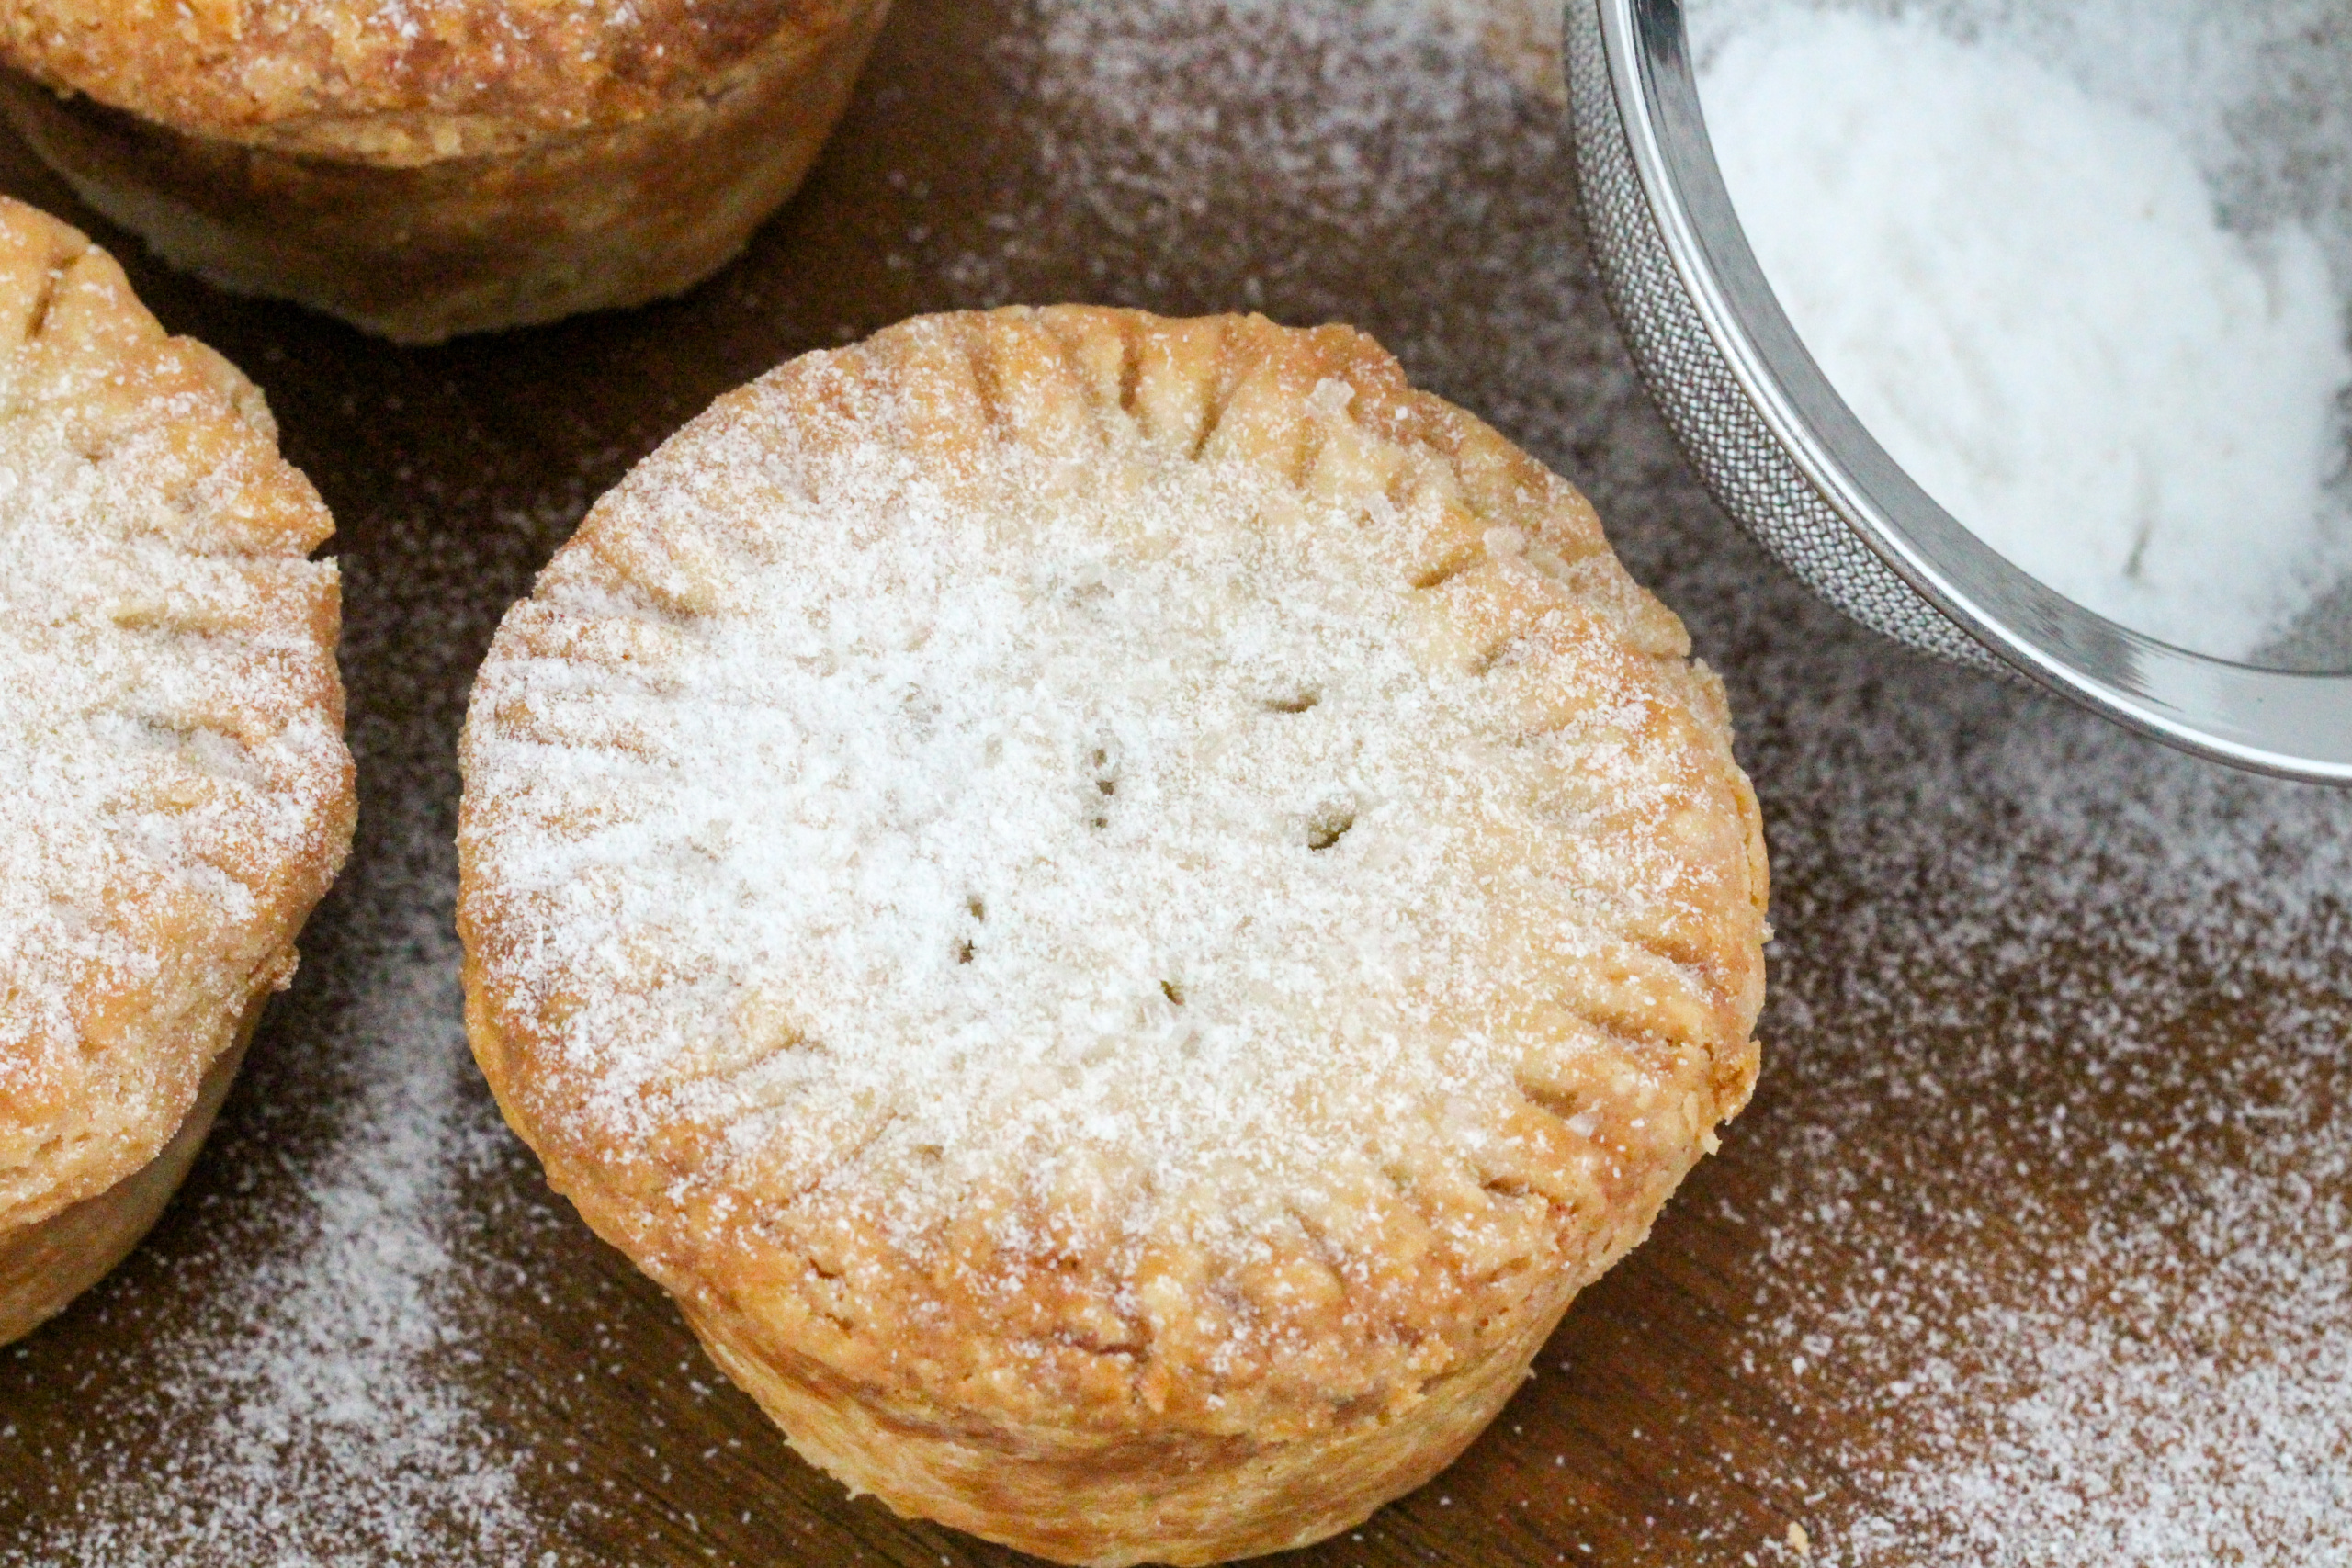 A mixture of dried fruits, sugar, spices, and brandy, Christmas Mince Pie is a traditional British holiday dessert. Recipe shared with permission granted by H.Y. Hanna, author of THE MOUSSE WONDERFUL TIME OF THE YEAR.